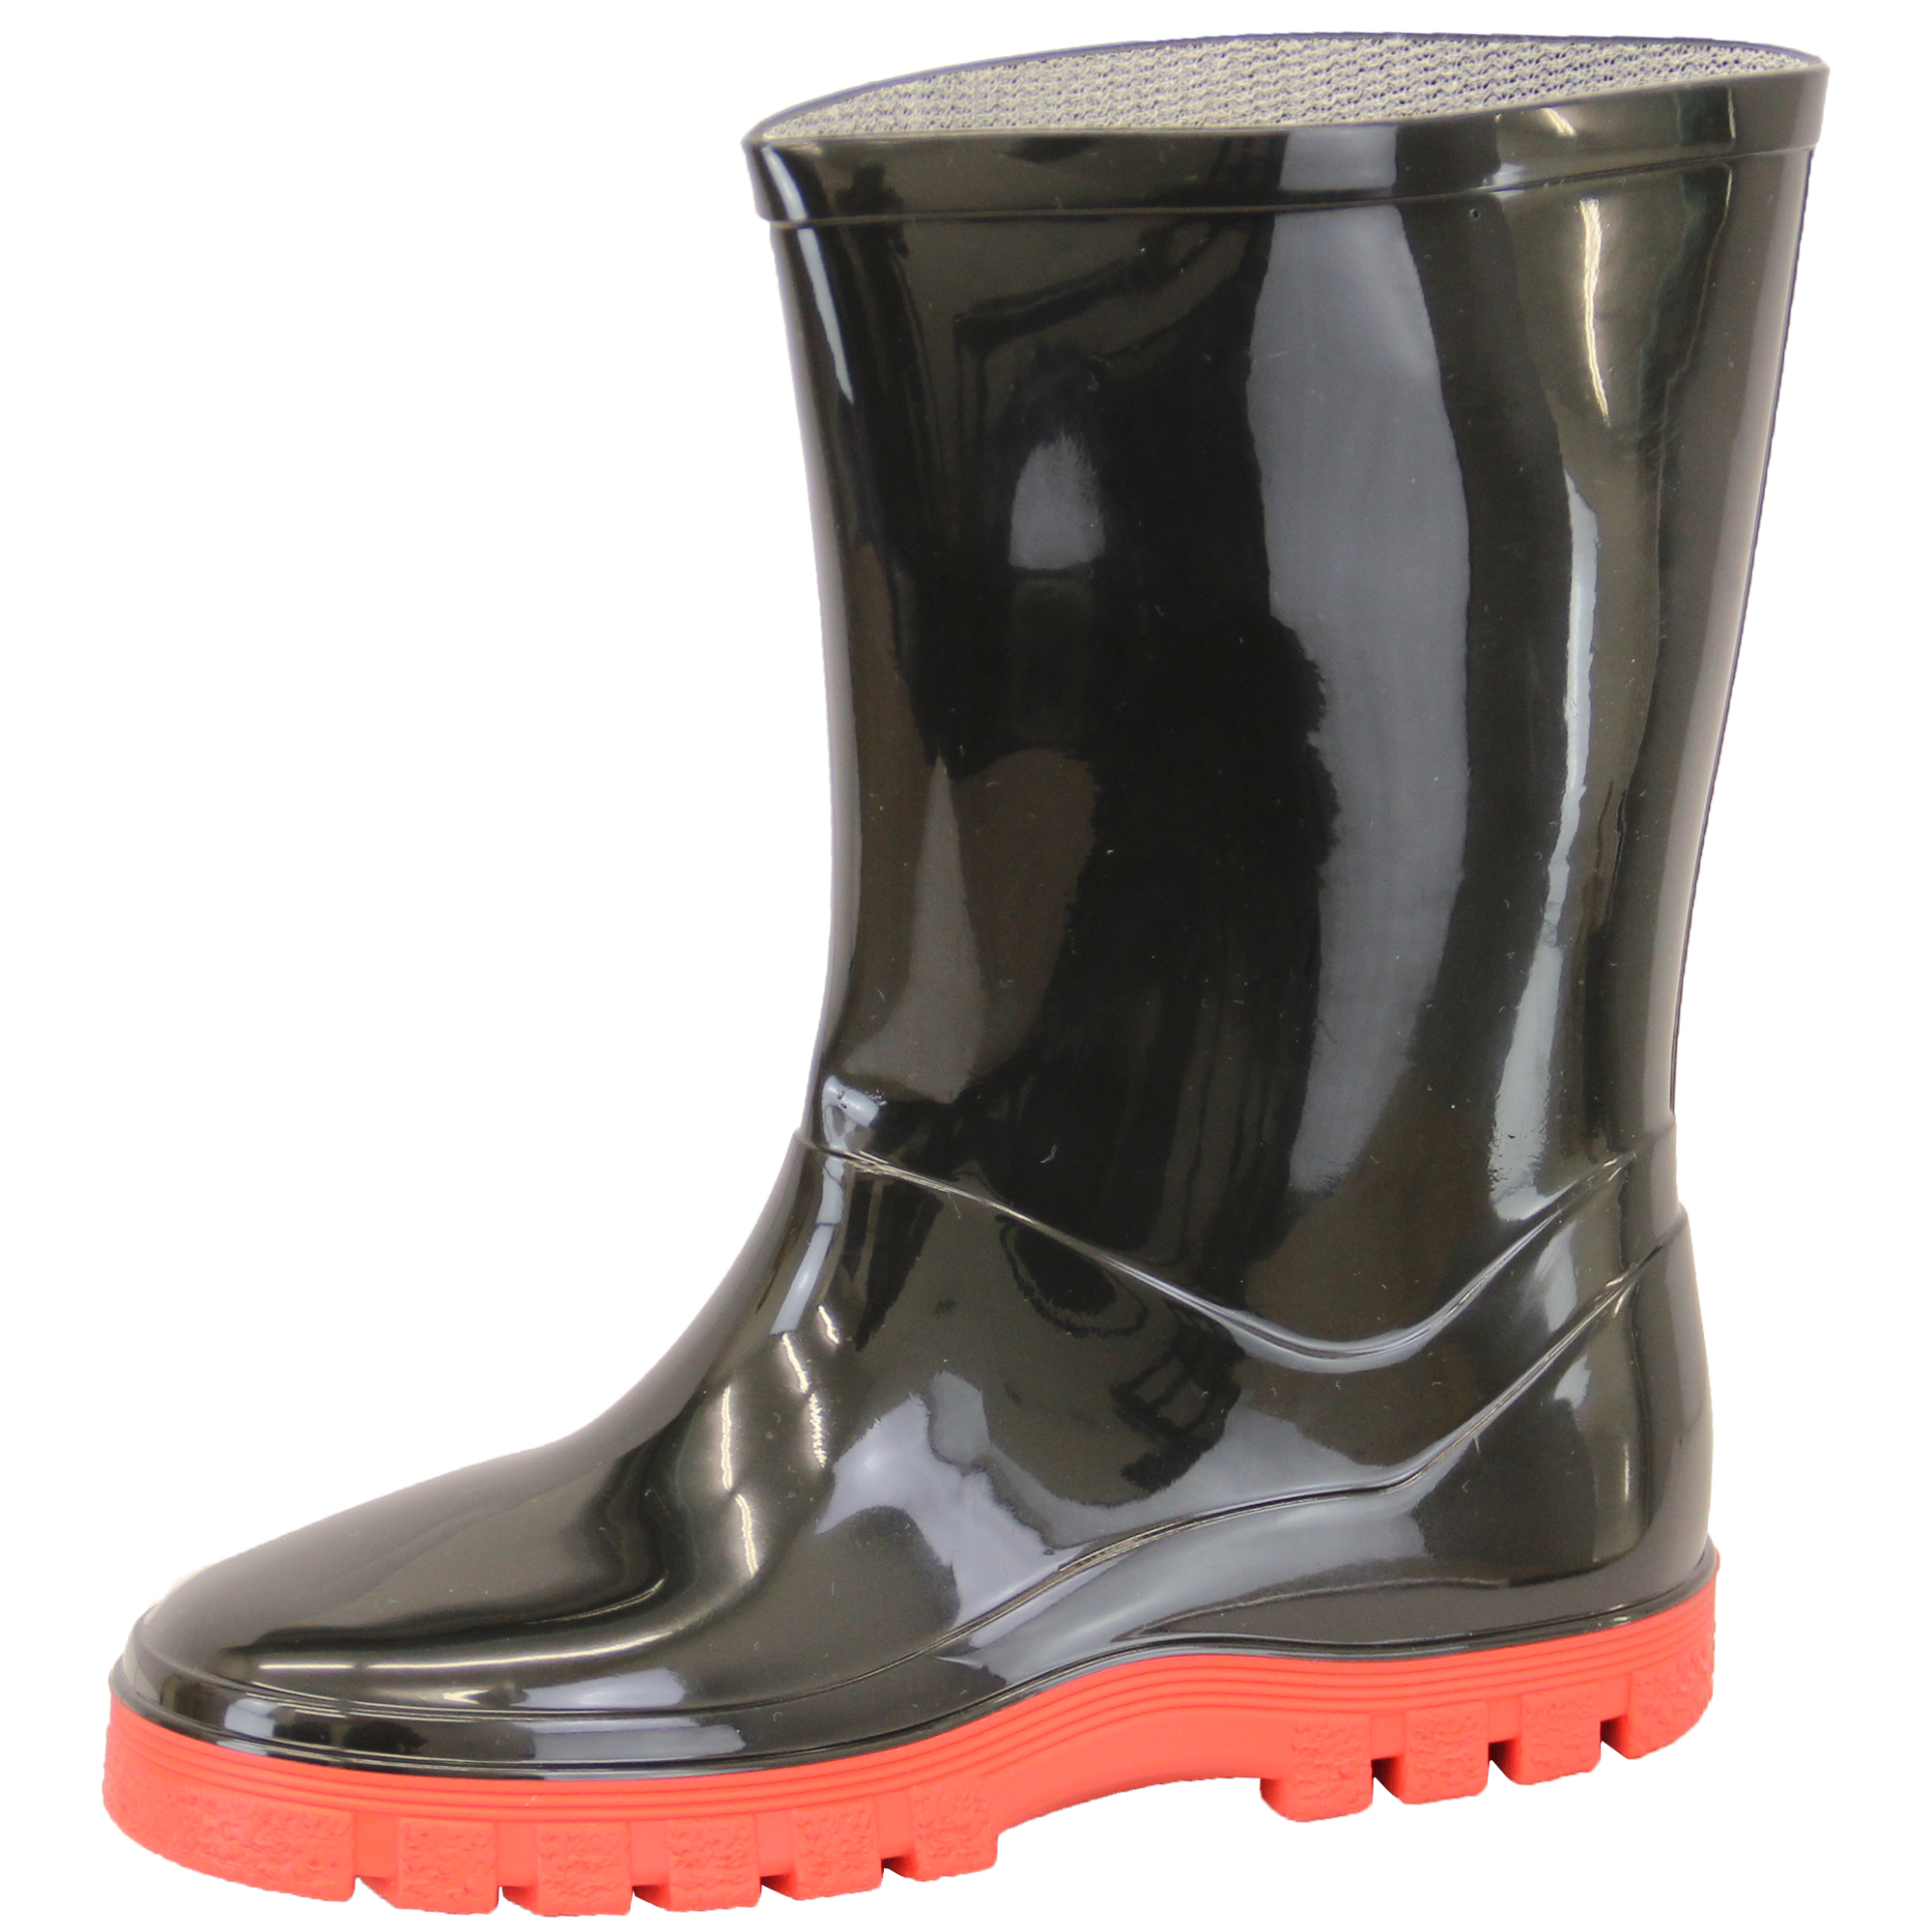 results for star wars wellies Save star wars wellies to get e-mail alerts and updates on your eBay Feed. Unfollow star wars wellies to stop getting updates on your eBay feed.